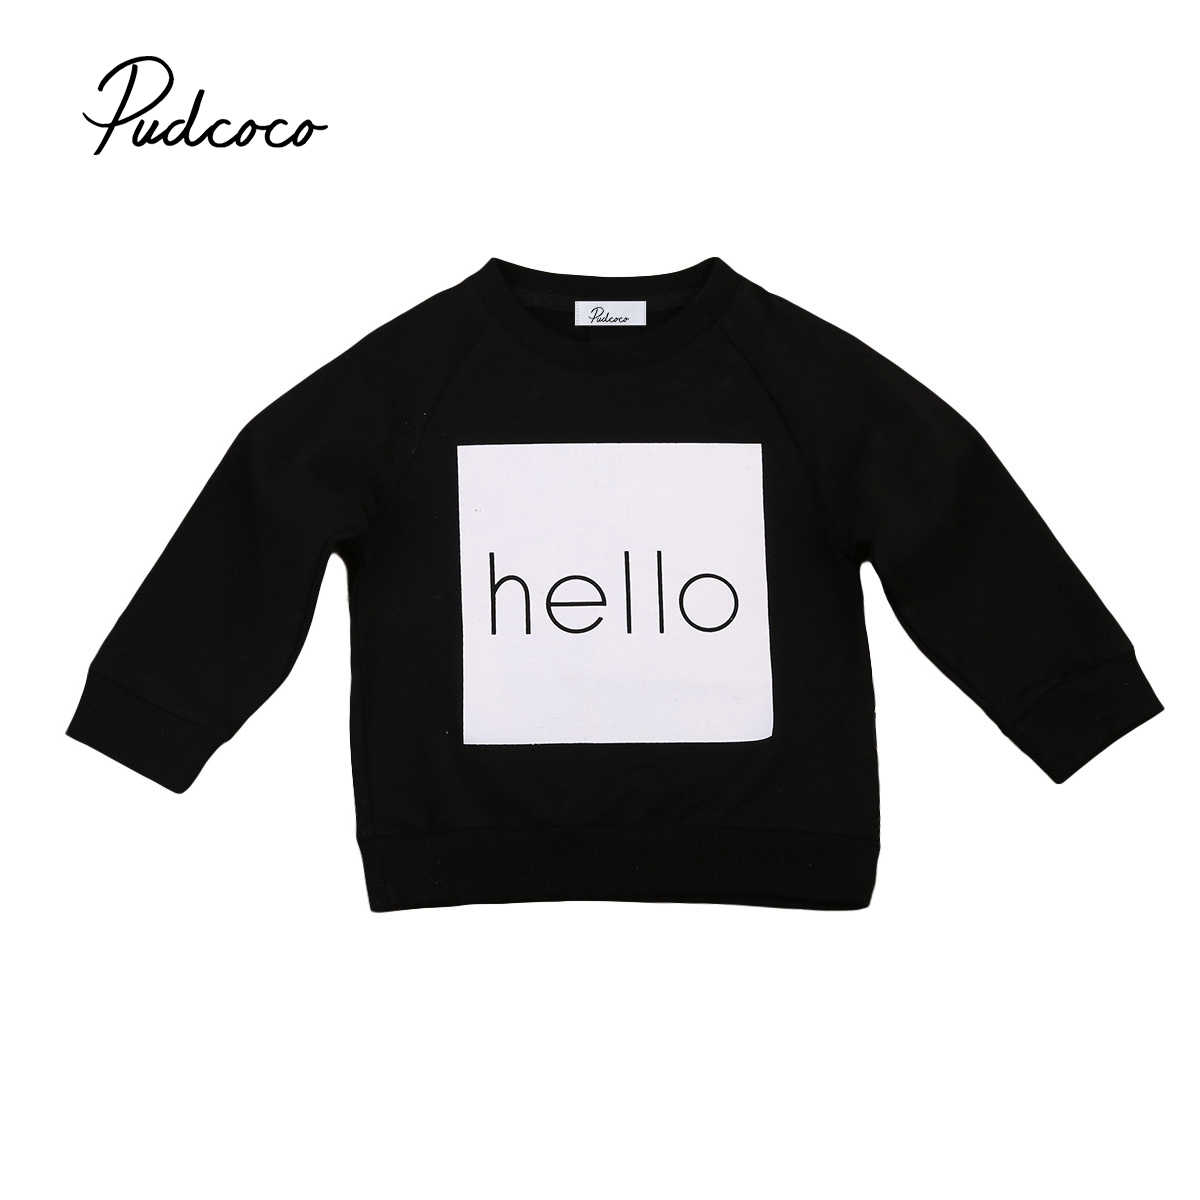 2017 New Brand Toddler Infant Kids Baby Boy Girl Jumpers Warm Sweatshirt Long Sleeve Tops Autum Clothes Casual Tops 1-6T